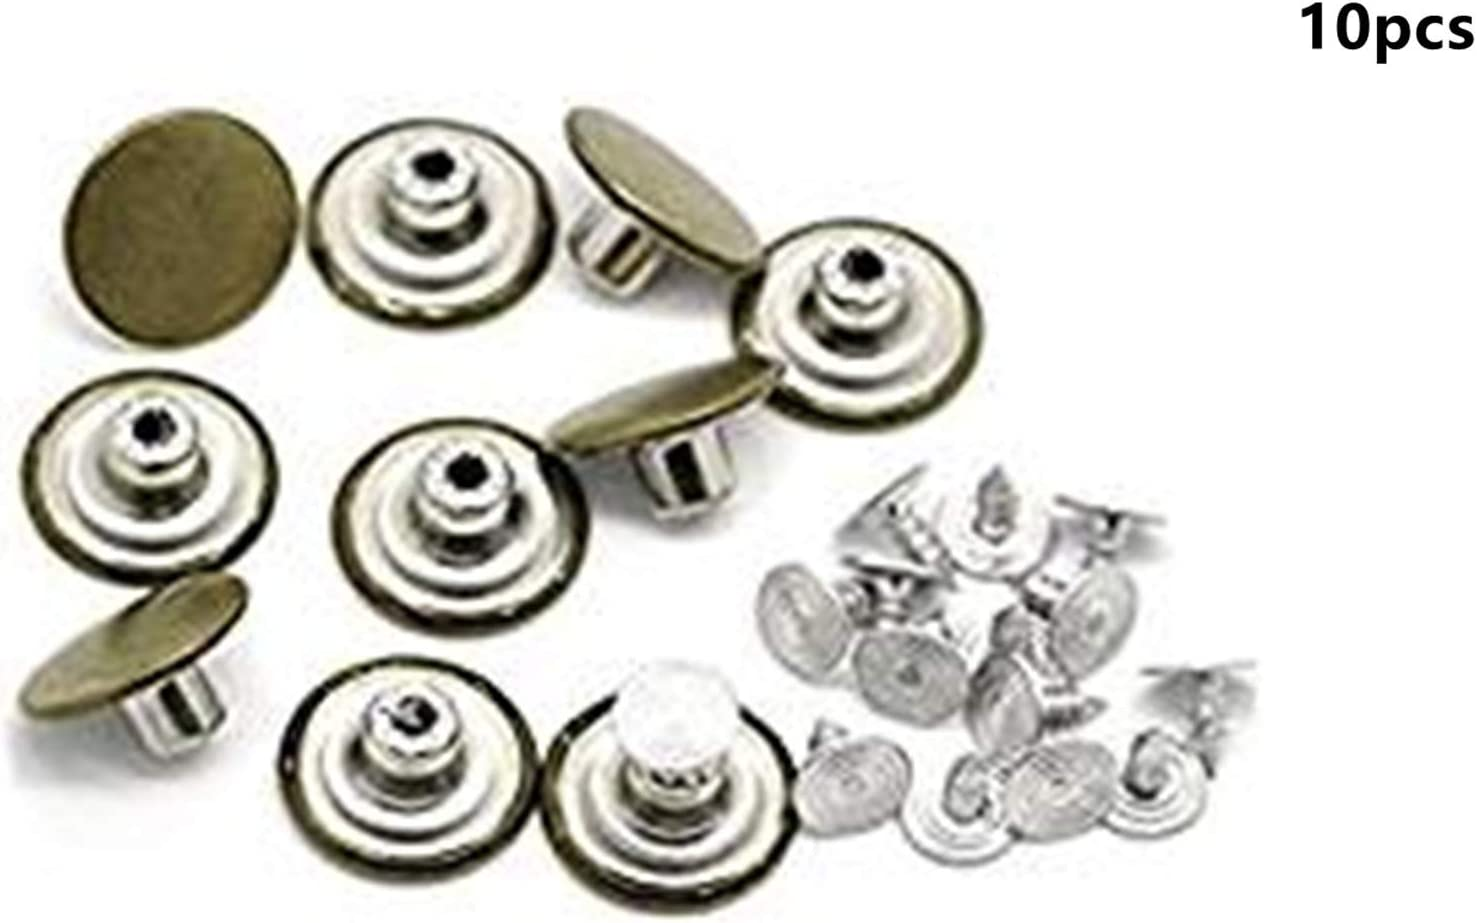 10pcs Metal Replacement Instant Suspender Clothes Jeans Buttons Accessories NEW